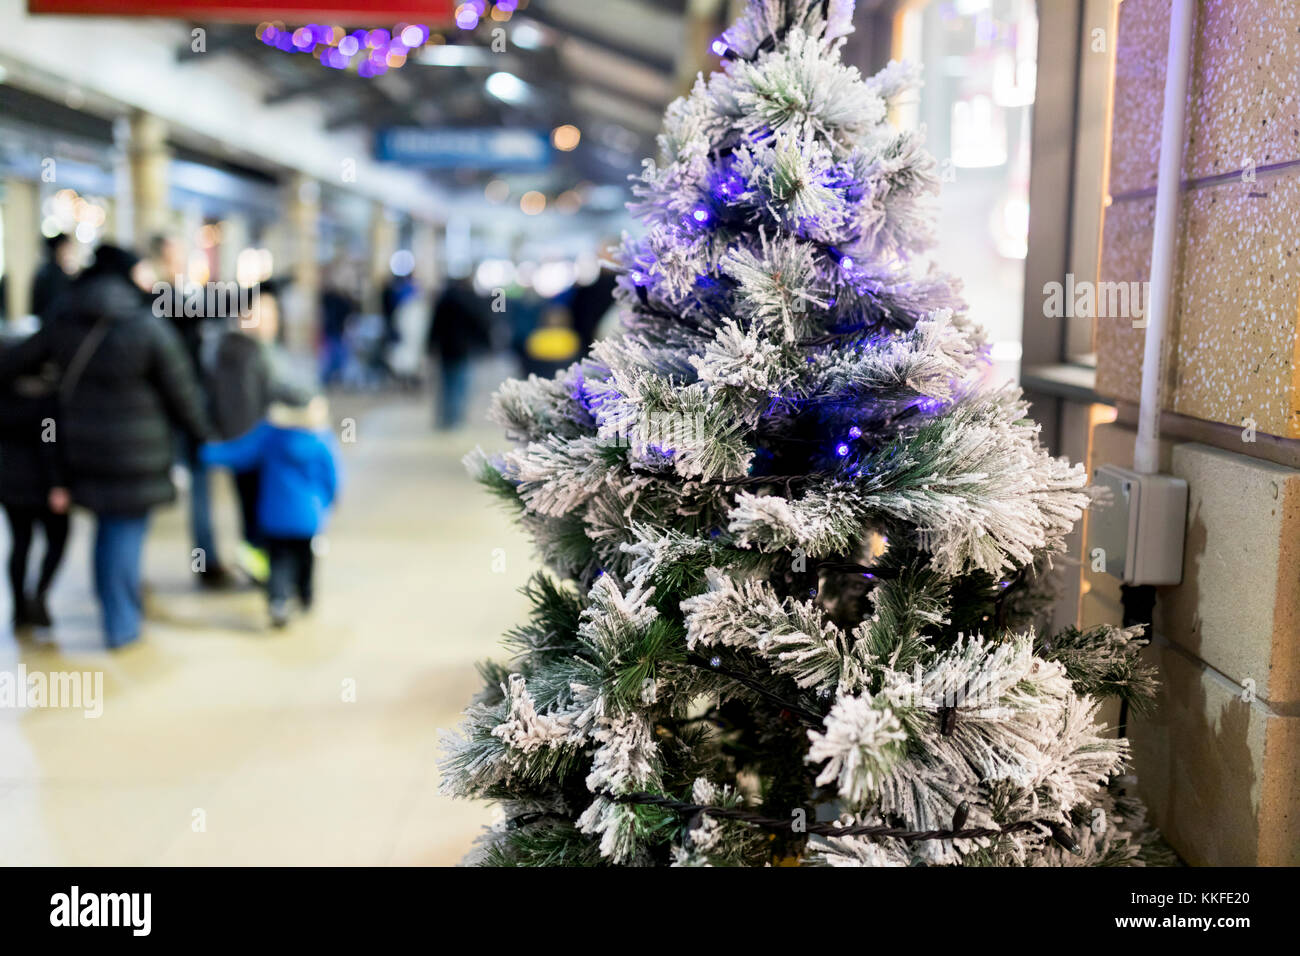 close up of an artificial christmas tree with blue twinkle lights and frost or snow in a shopping mall or shopping centre with people blurred in the b